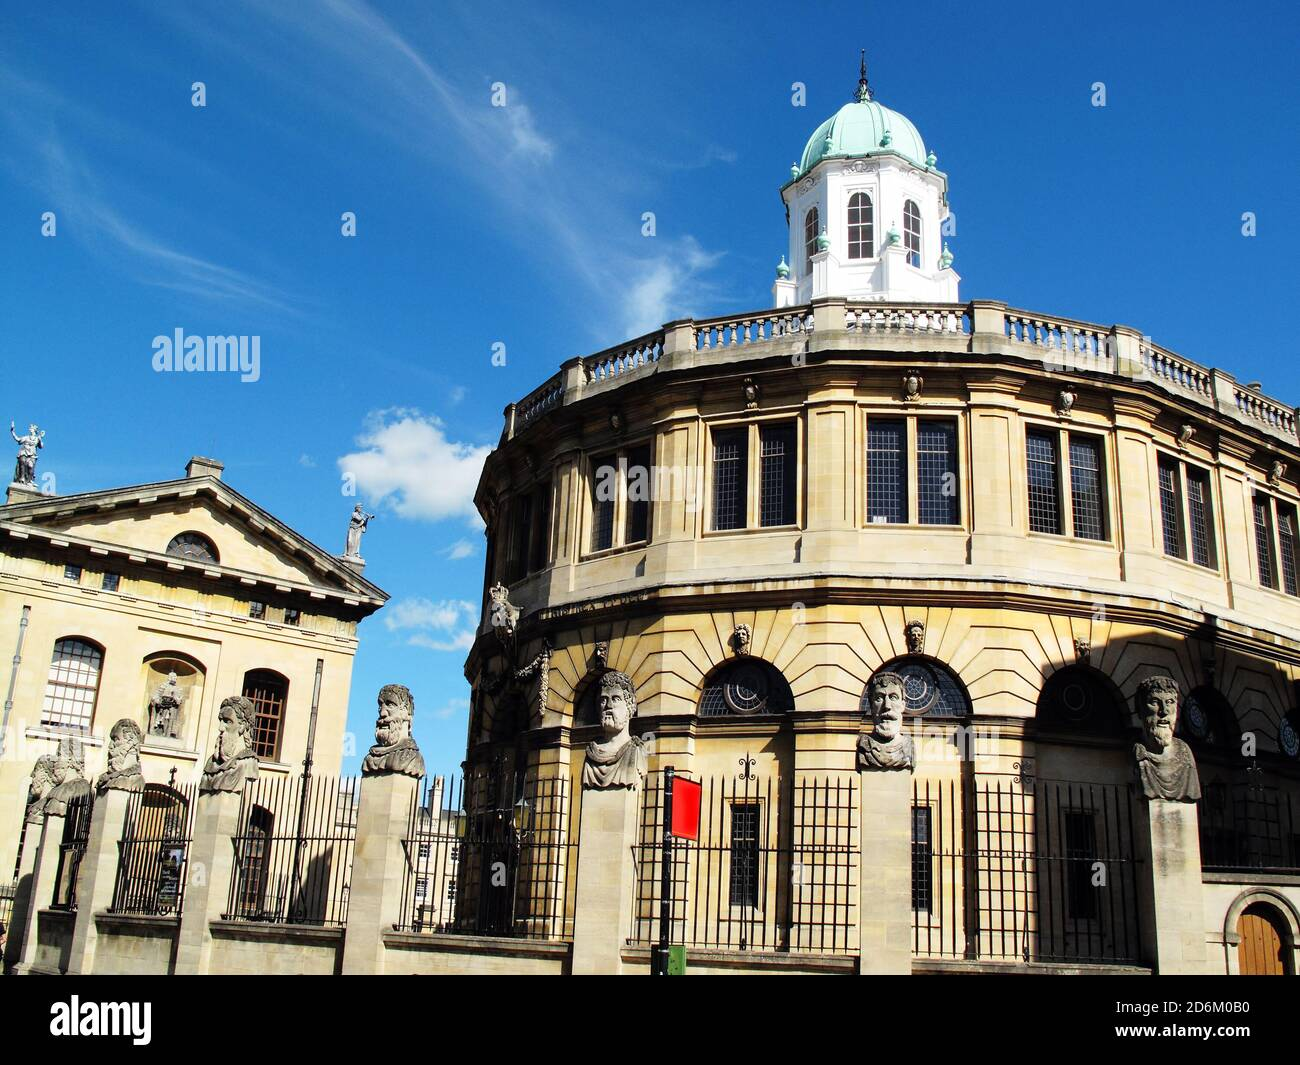 The Sheldonian Theatre in the city of Oxford, Oxfordshire, England, UK built between 1664-8 and is part of the Oxford University Stock Photo